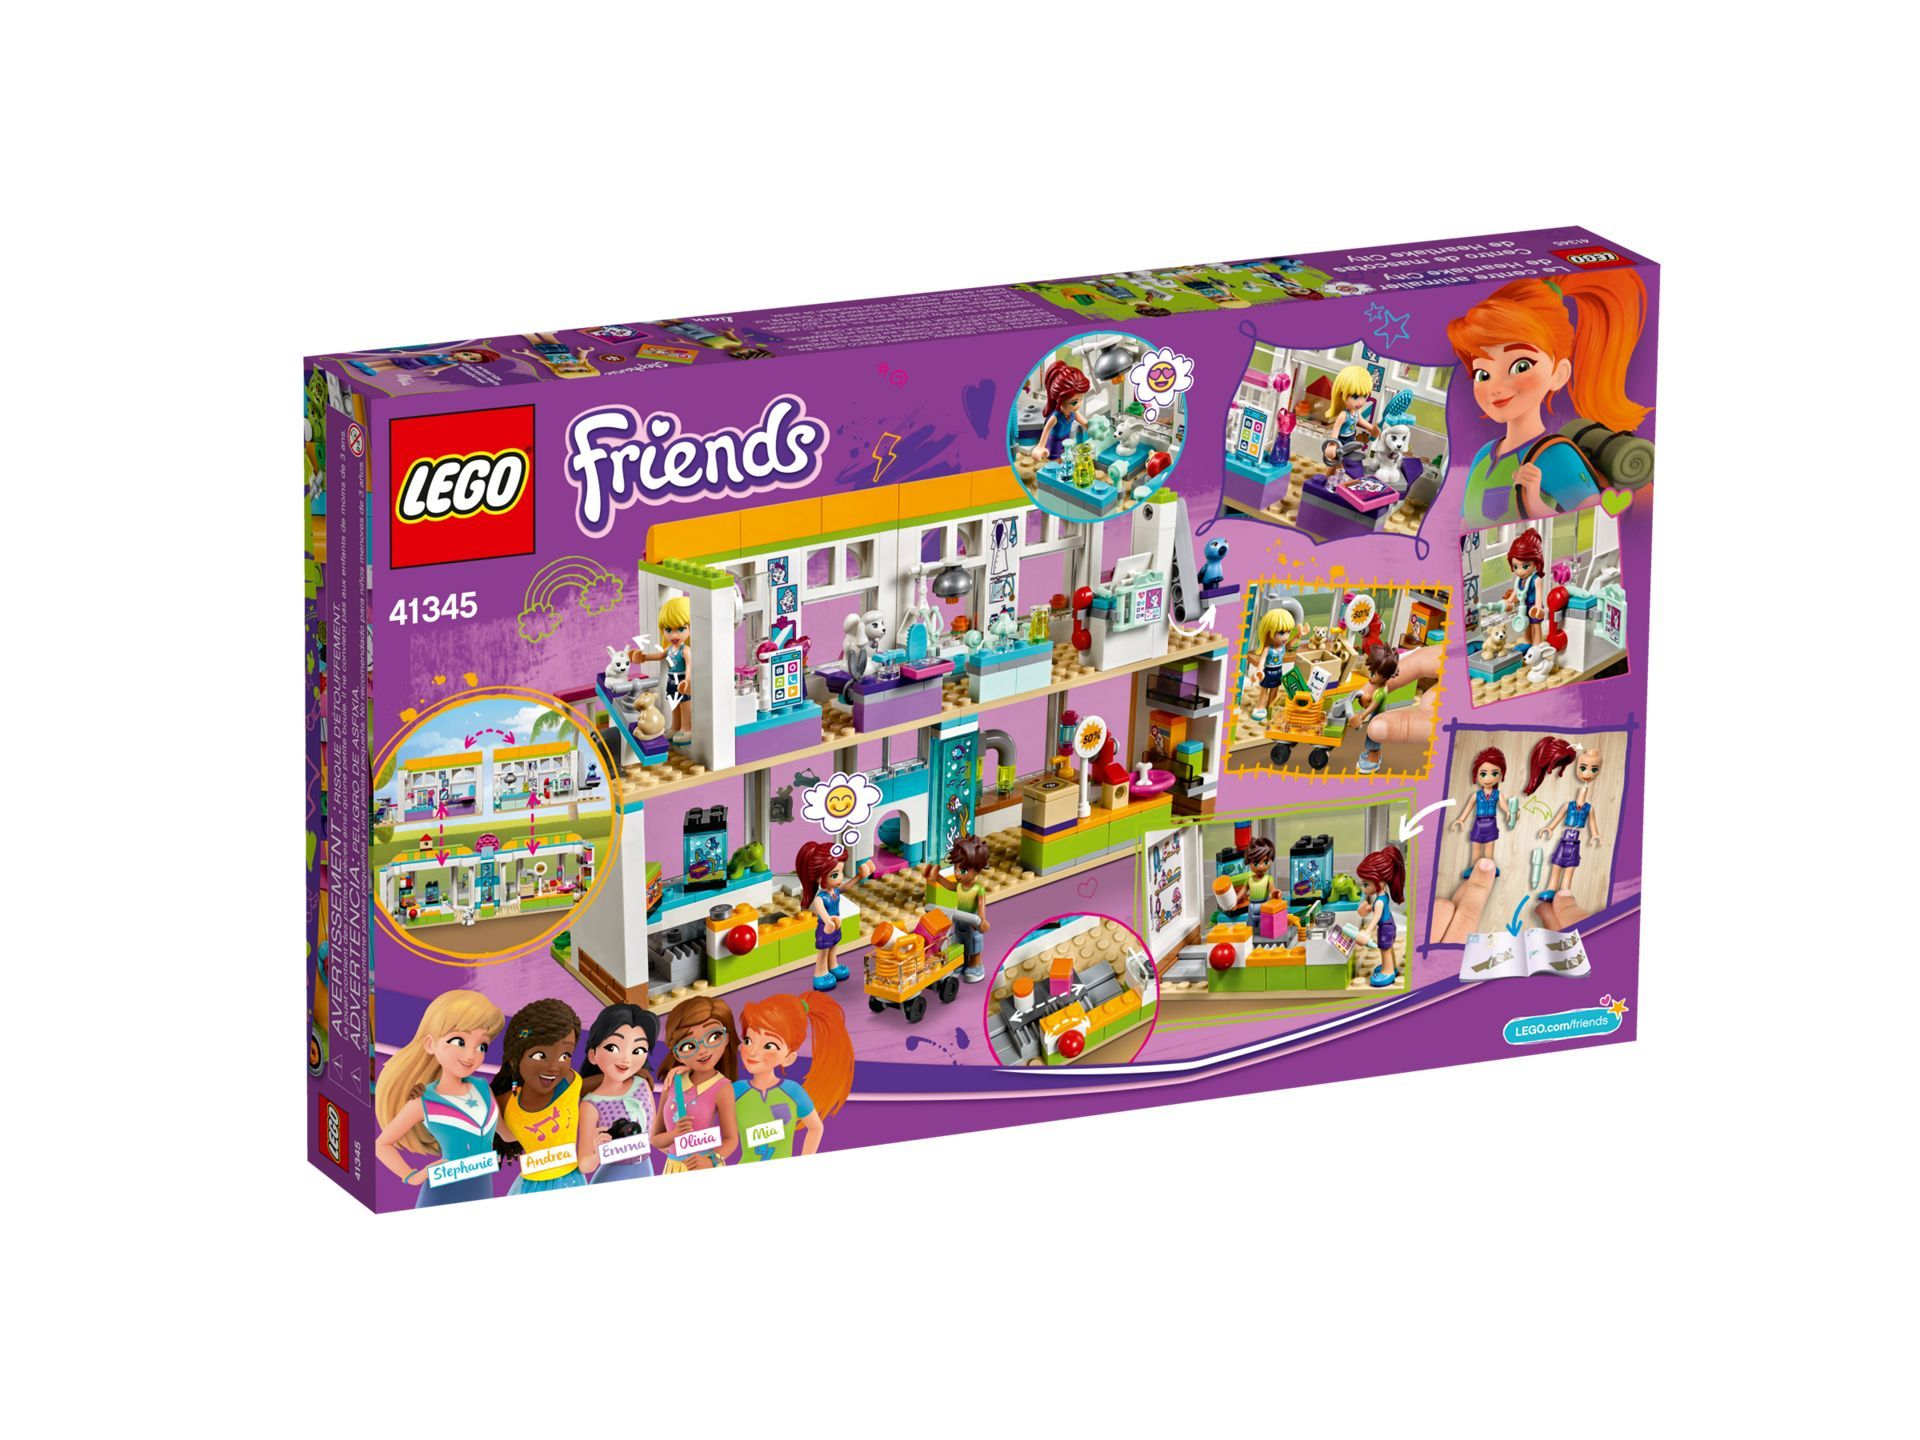 lego friends neuheiten 2 halbjahr 2018 ab 1 juni 2018. Black Bedroom Furniture Sets. Home Design Ideas